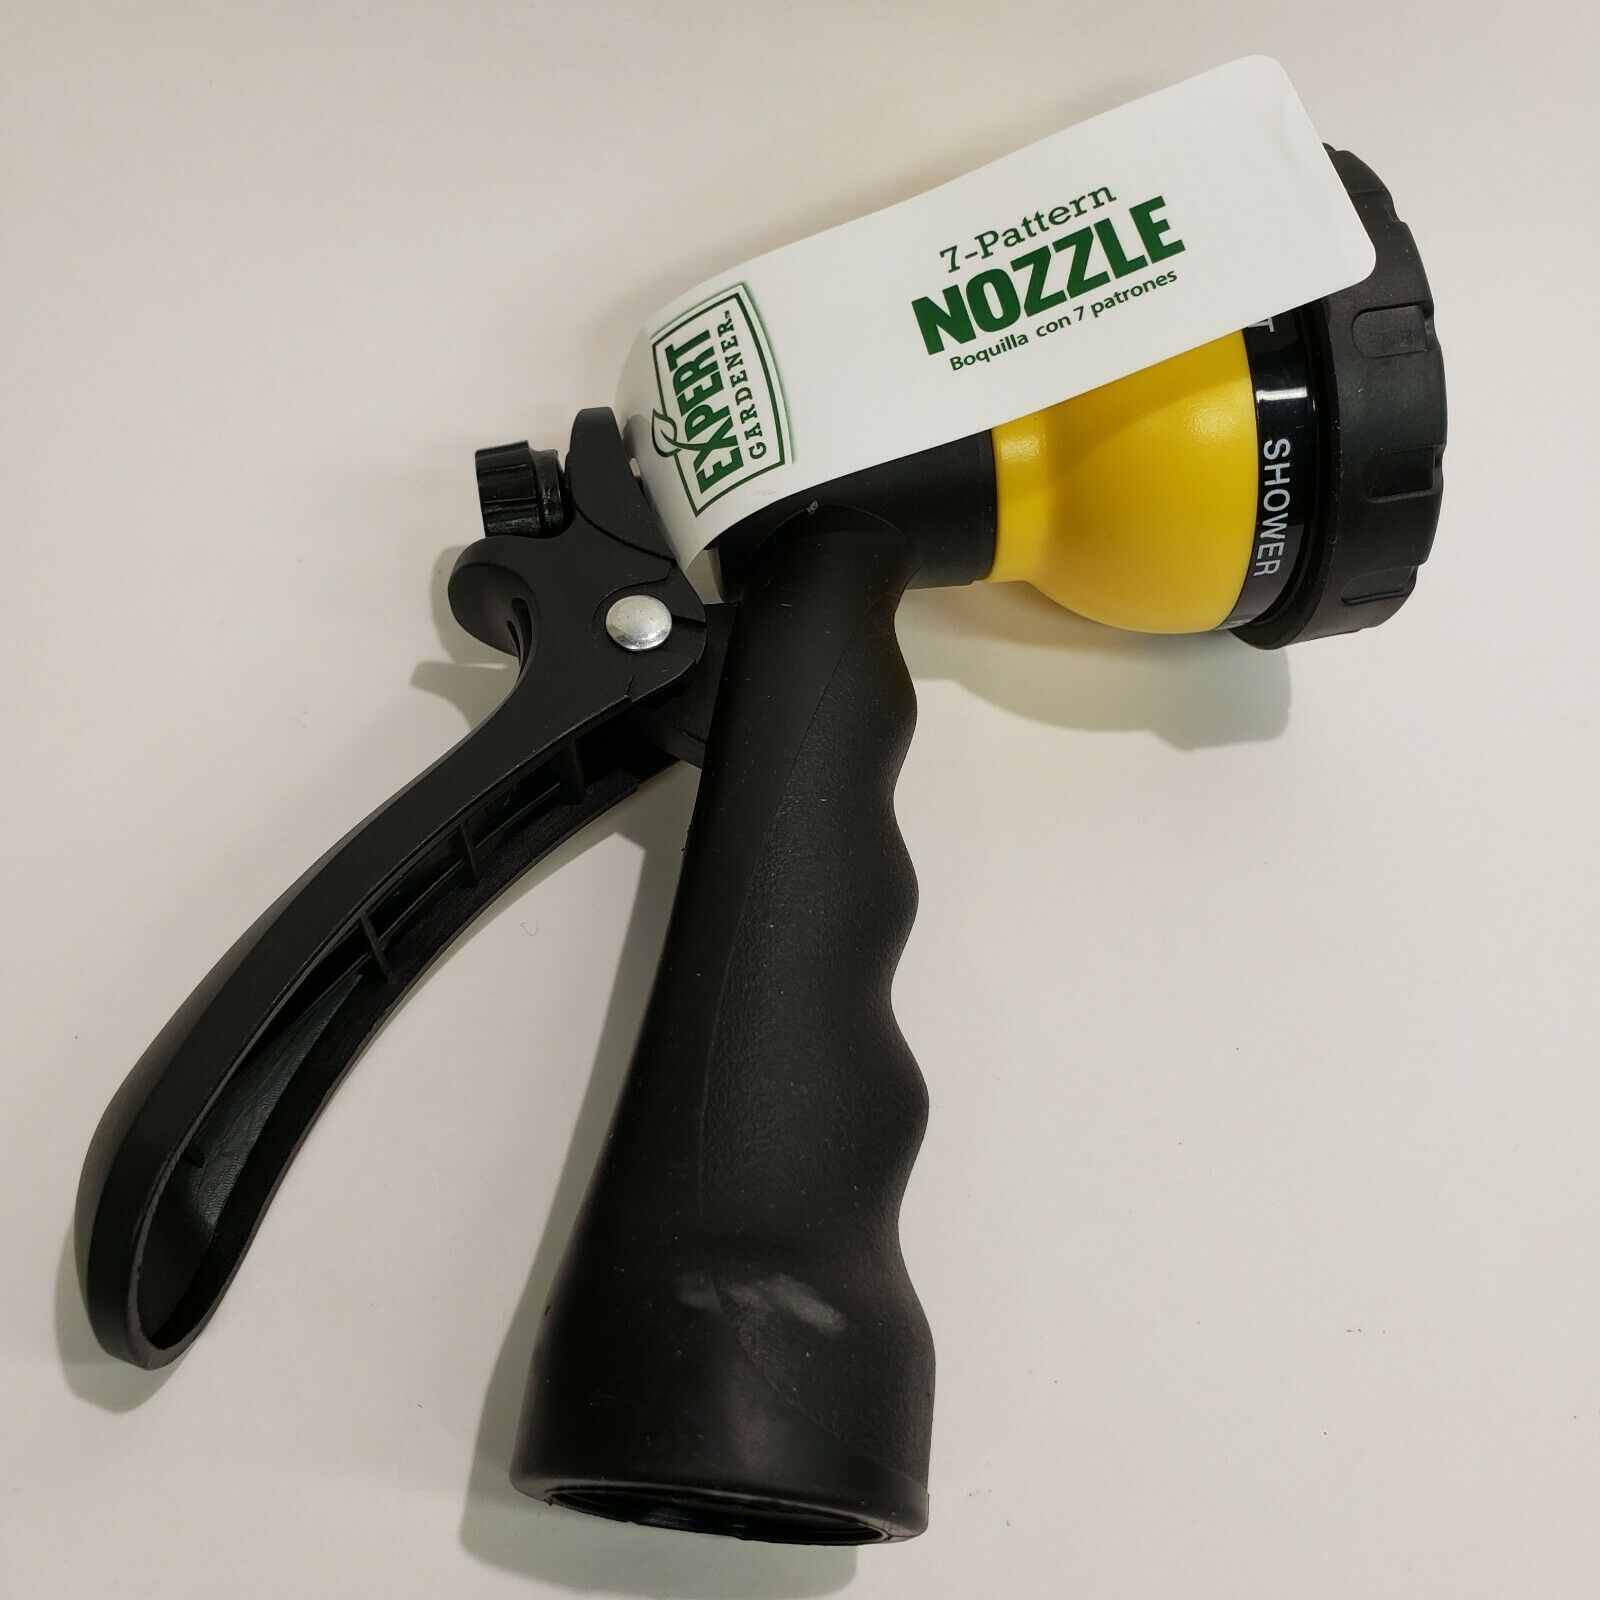 NEW Hose Nozzle 7 pattern Metal body Adjustable YELLOW - NEW NWT